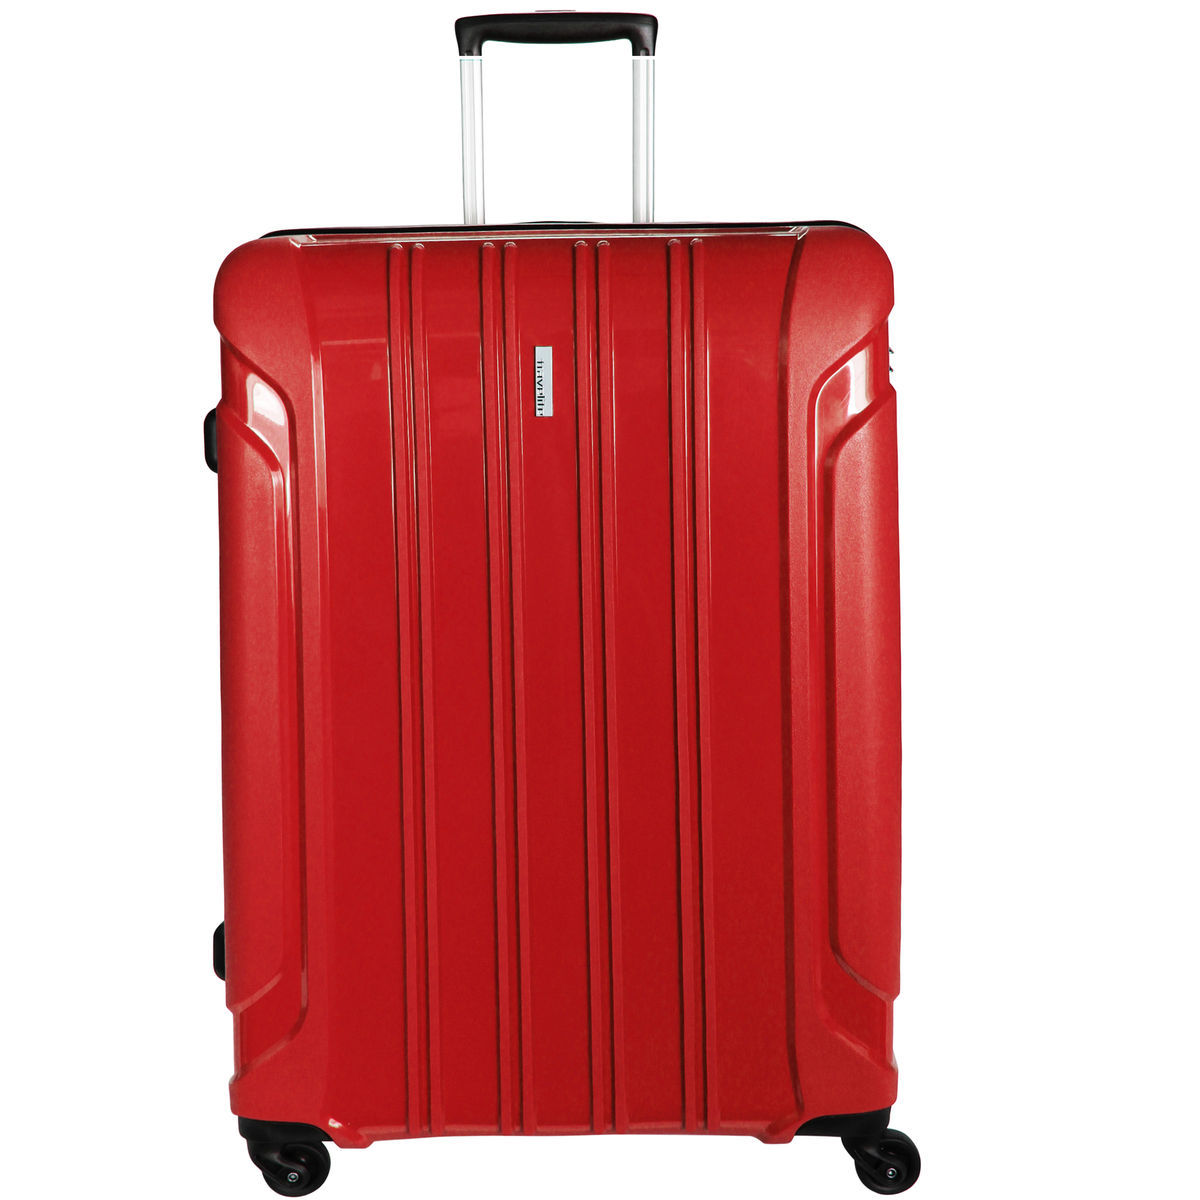 Travelite Colosso 4-Rollen Trolley M 65 cm, red